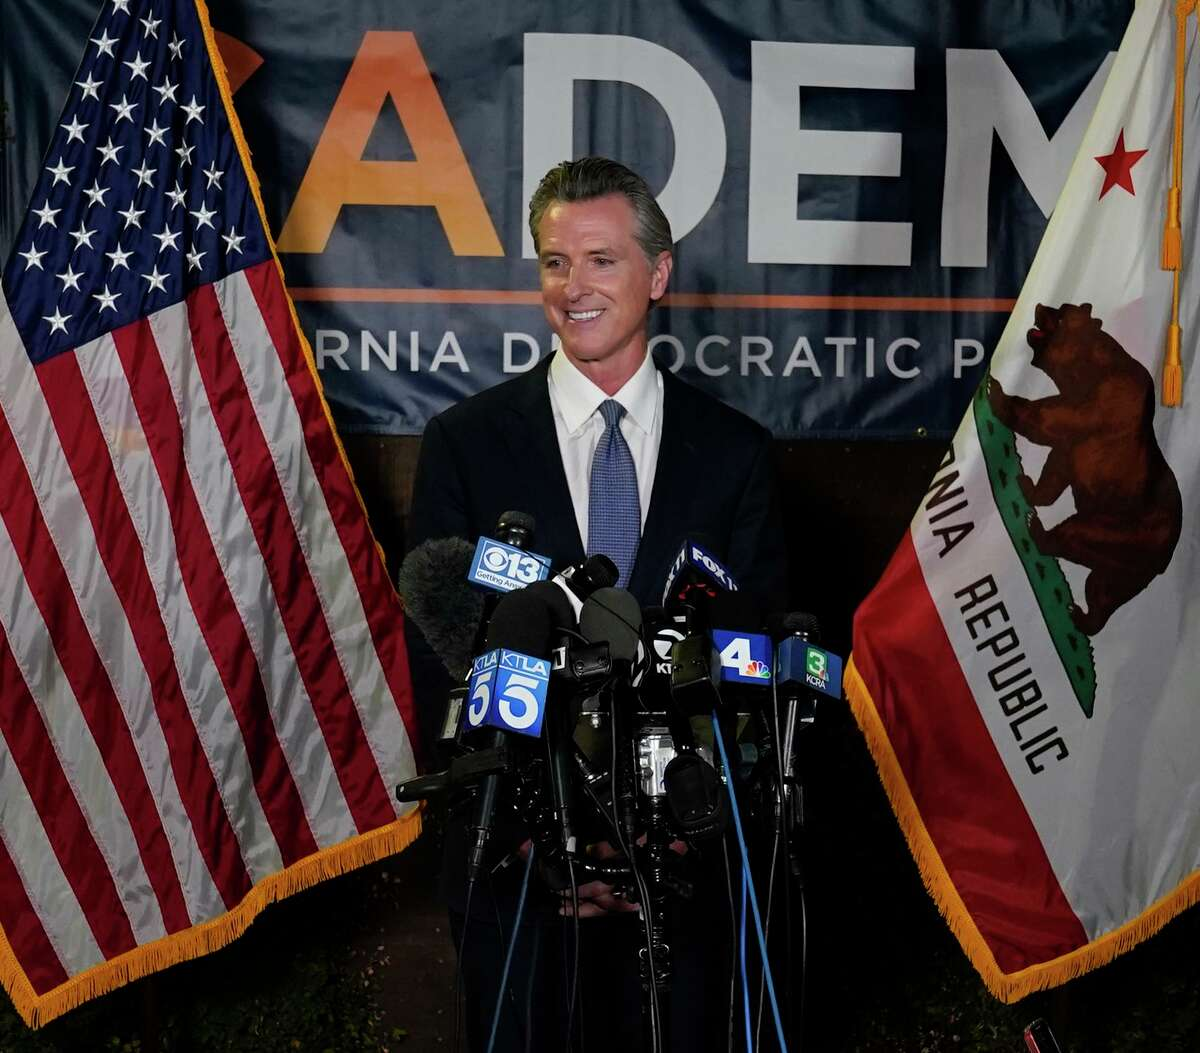 Gov. Gavin Newsom called for unity and said voters had chosen diversity and inclusion over cynicism and negativity.